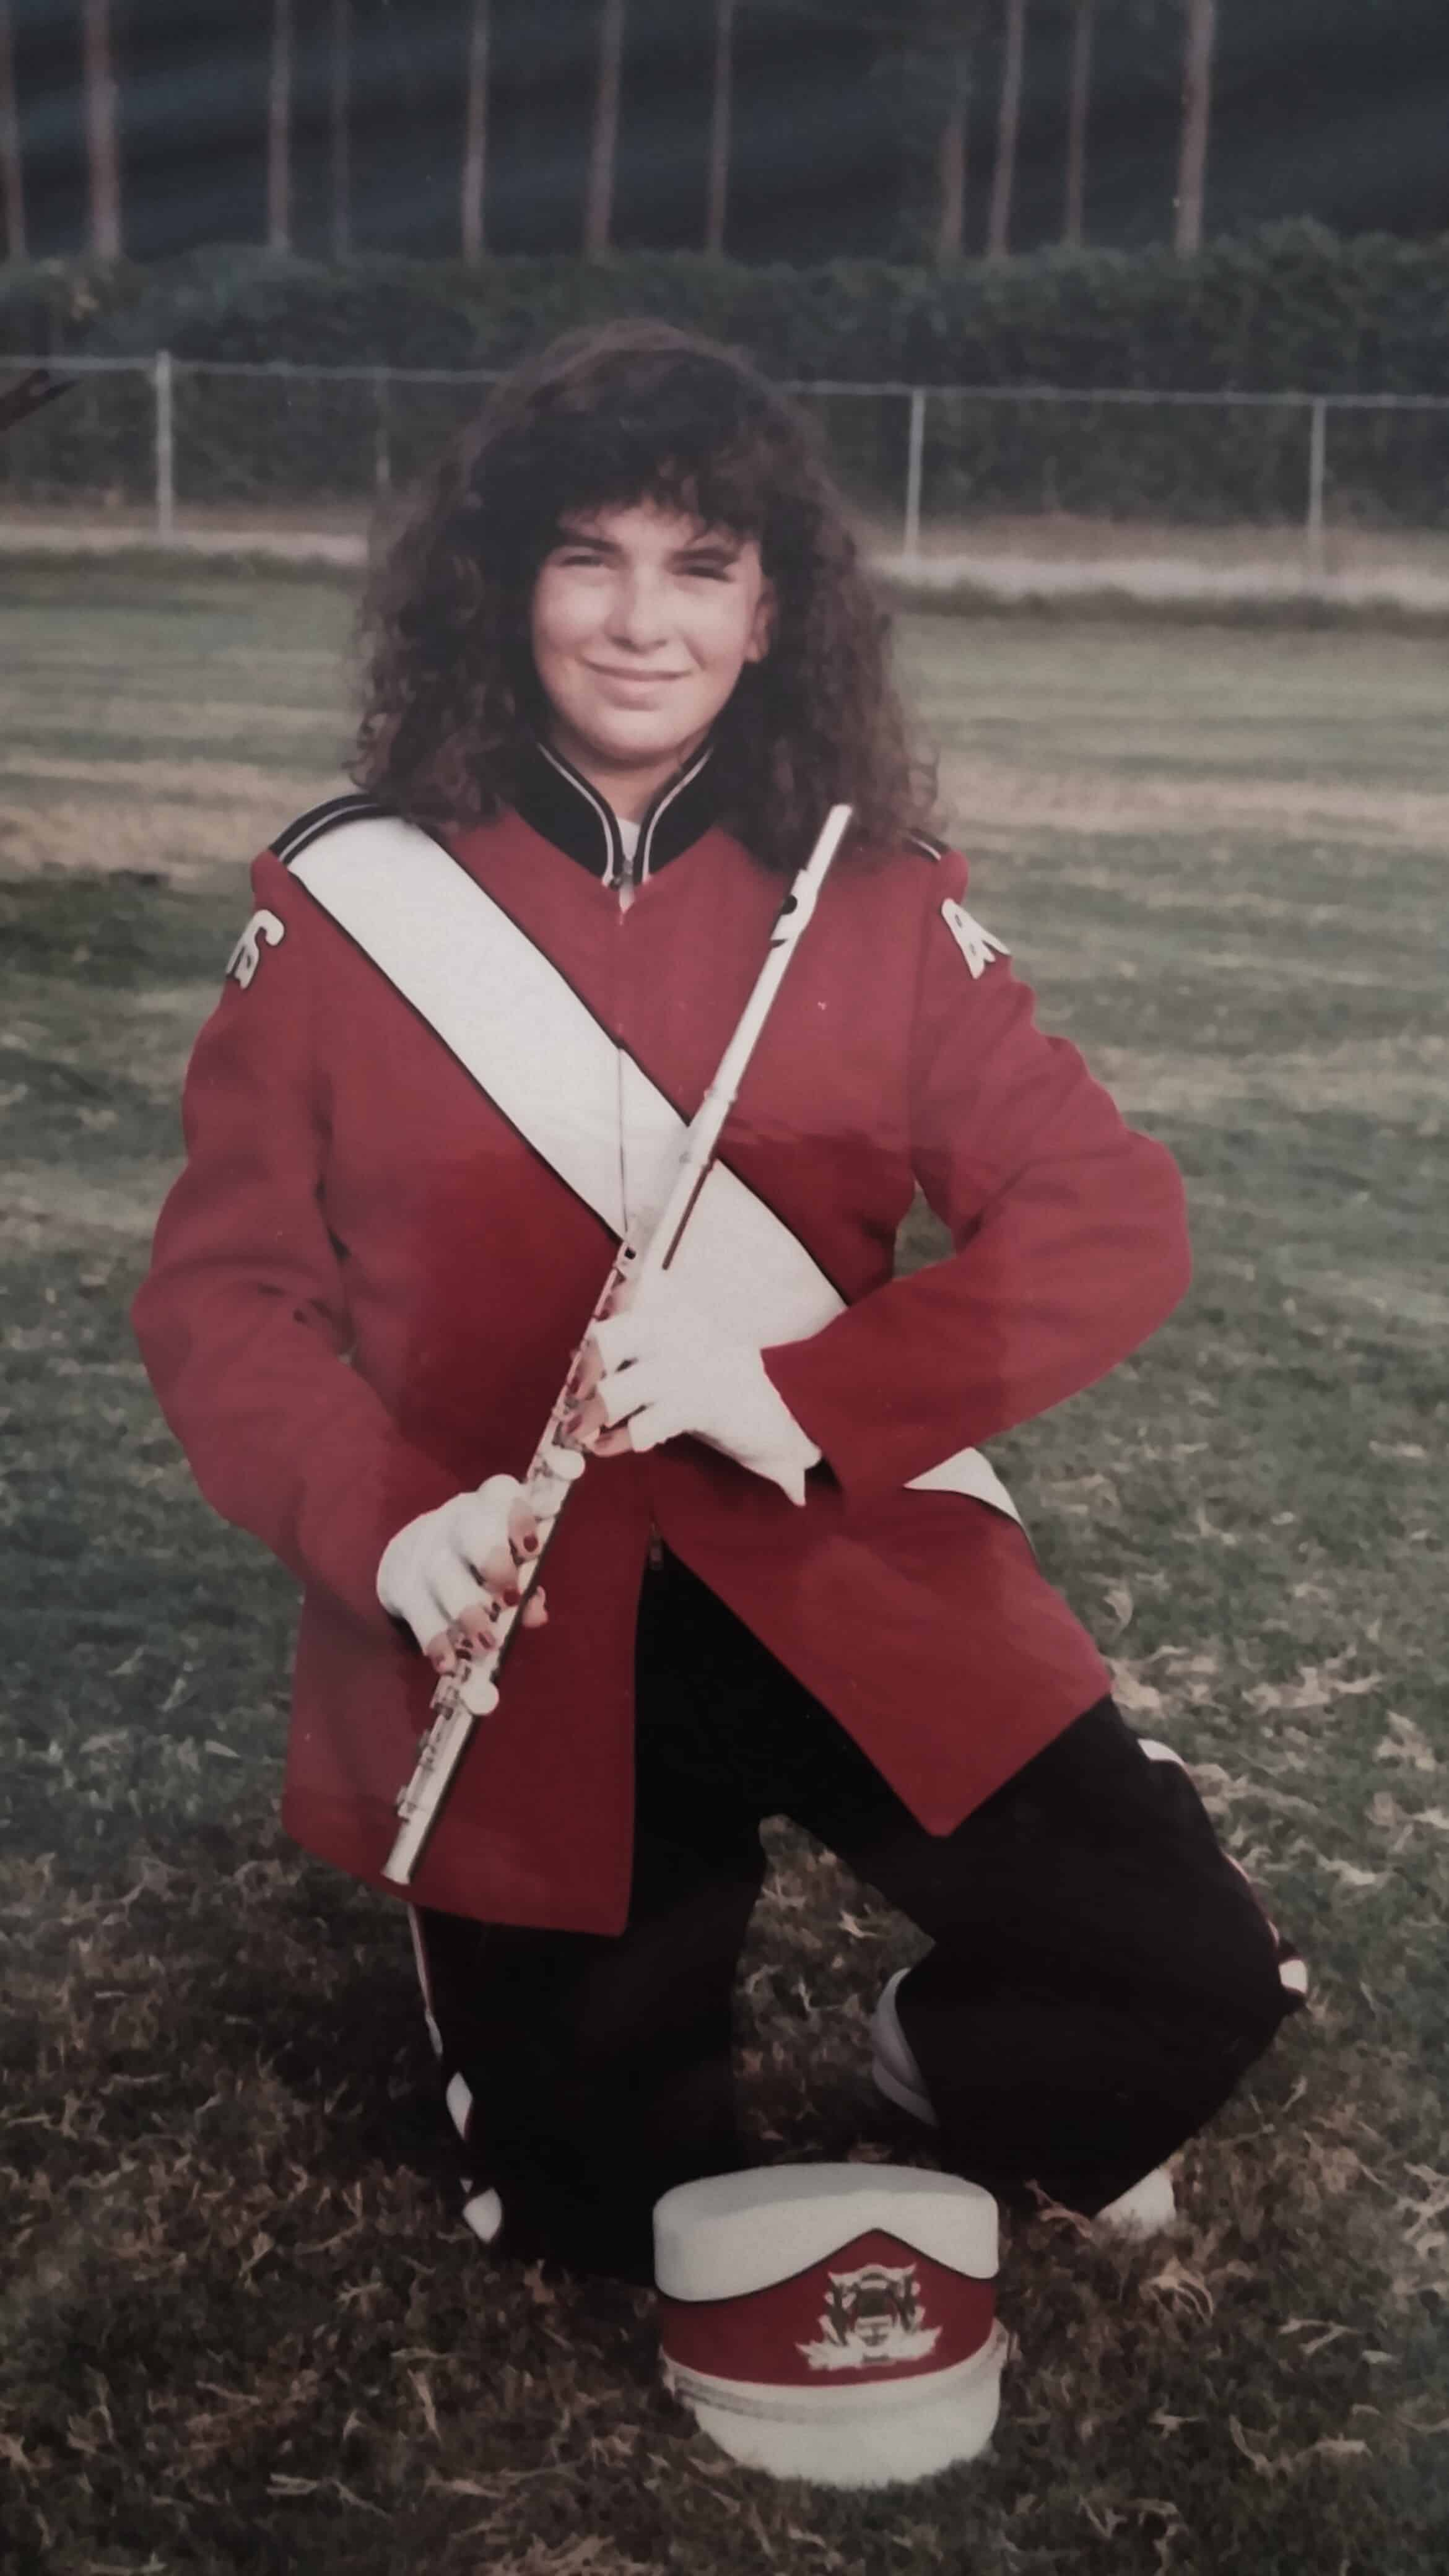 Wendi Wilson in marching band uniform